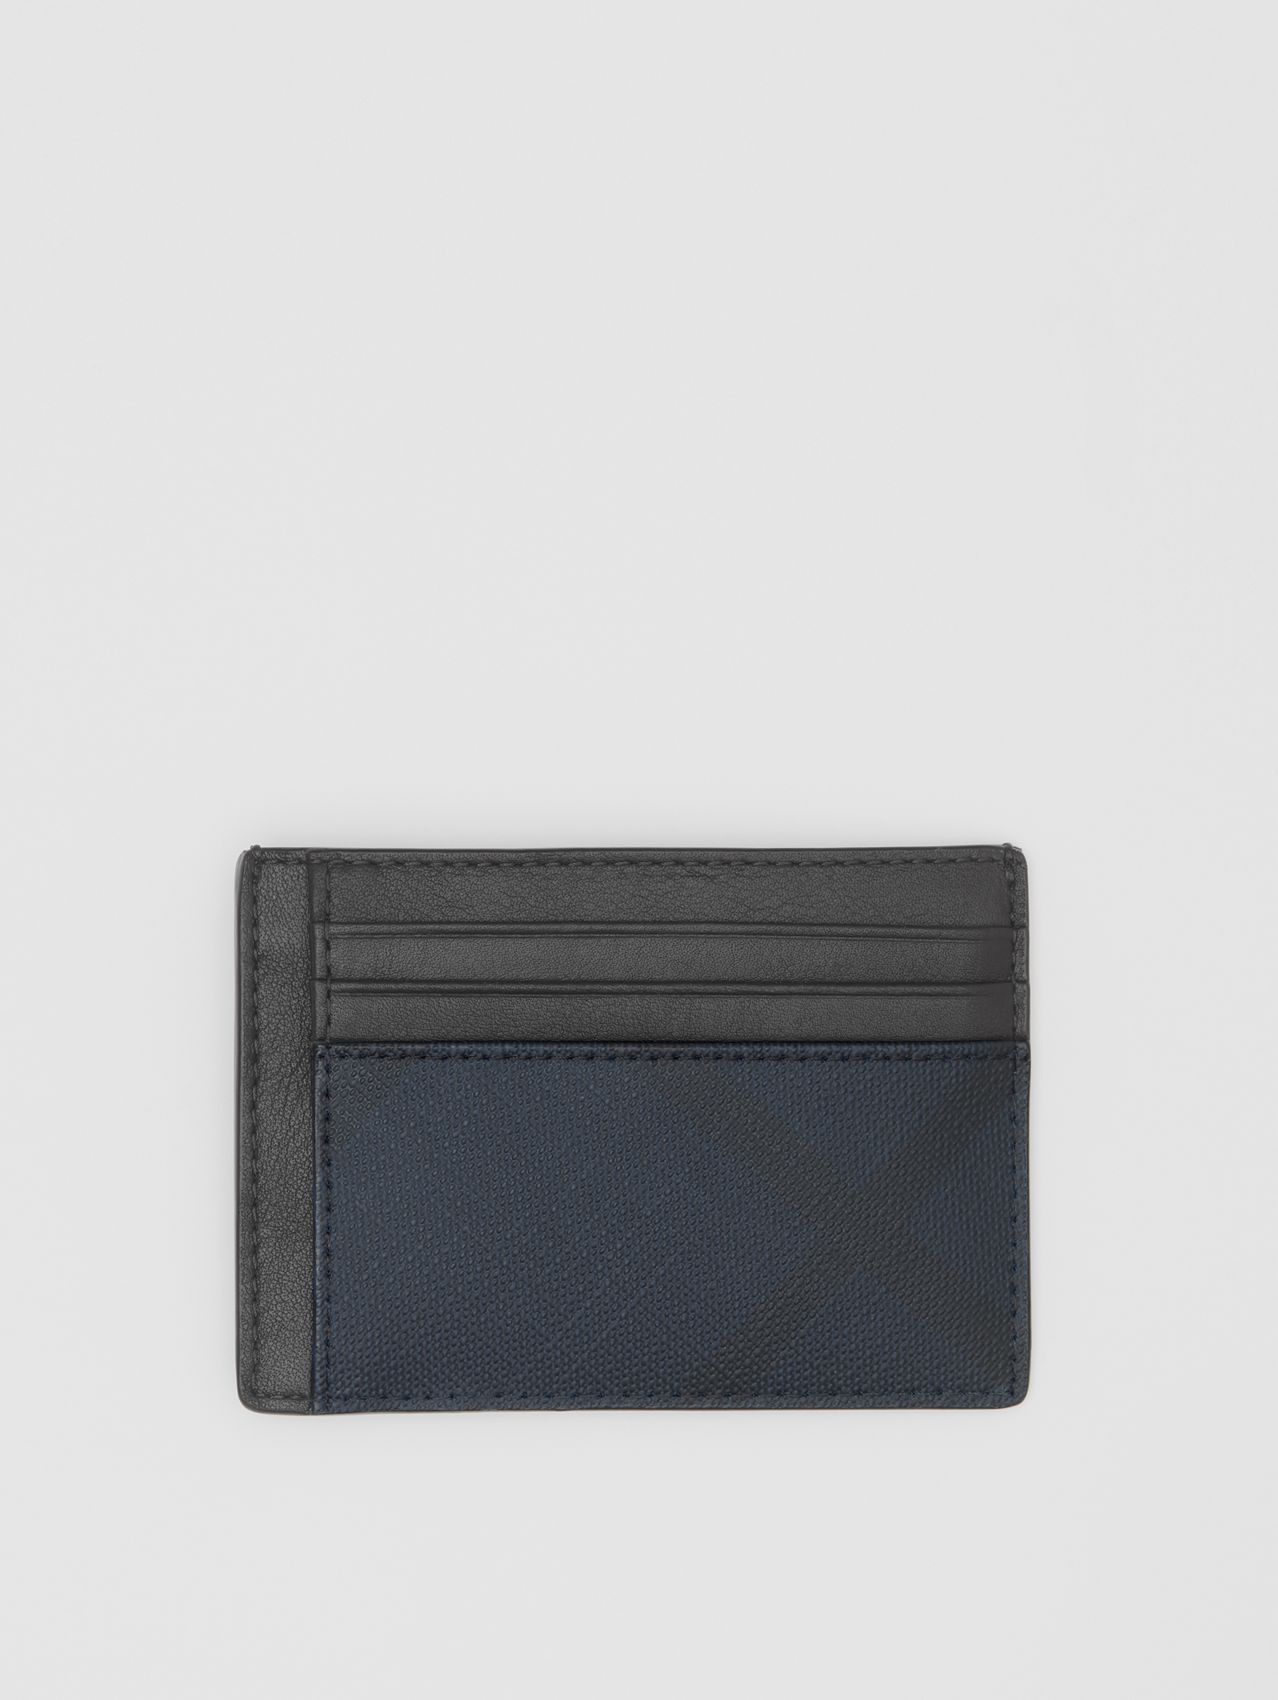 Porta carte di credito con motivo London check, finiture in pelle e fermasoldi (Navy)